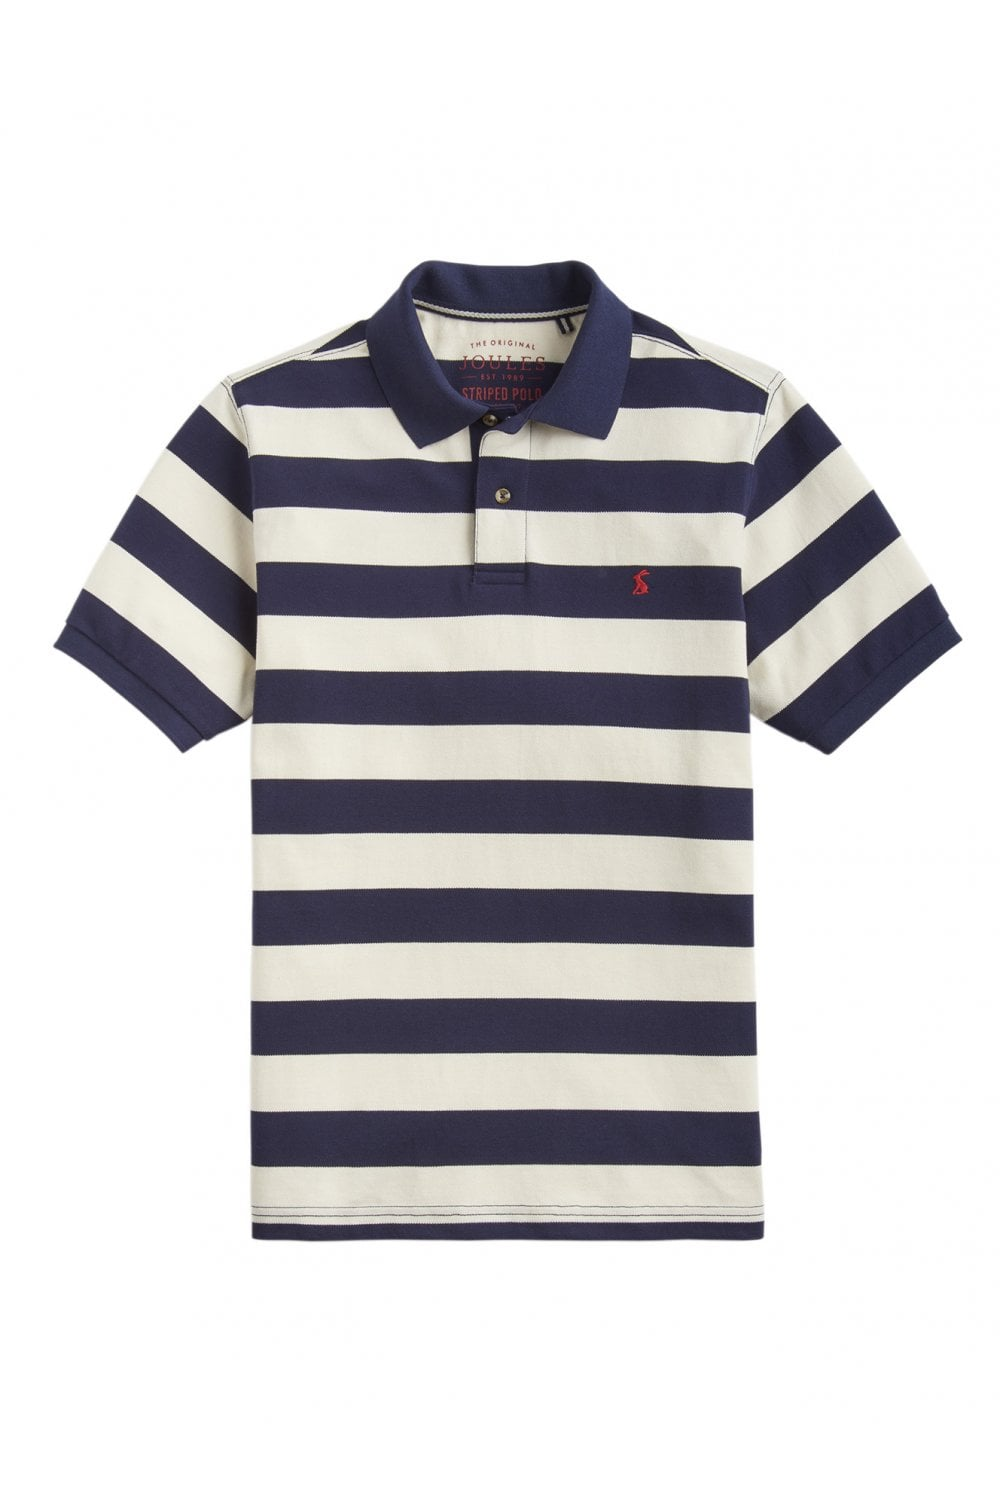 f182be0ad03a8 Joules Mens Filbert Striped Classic Fit Polo - Navy Cream Stripe ...